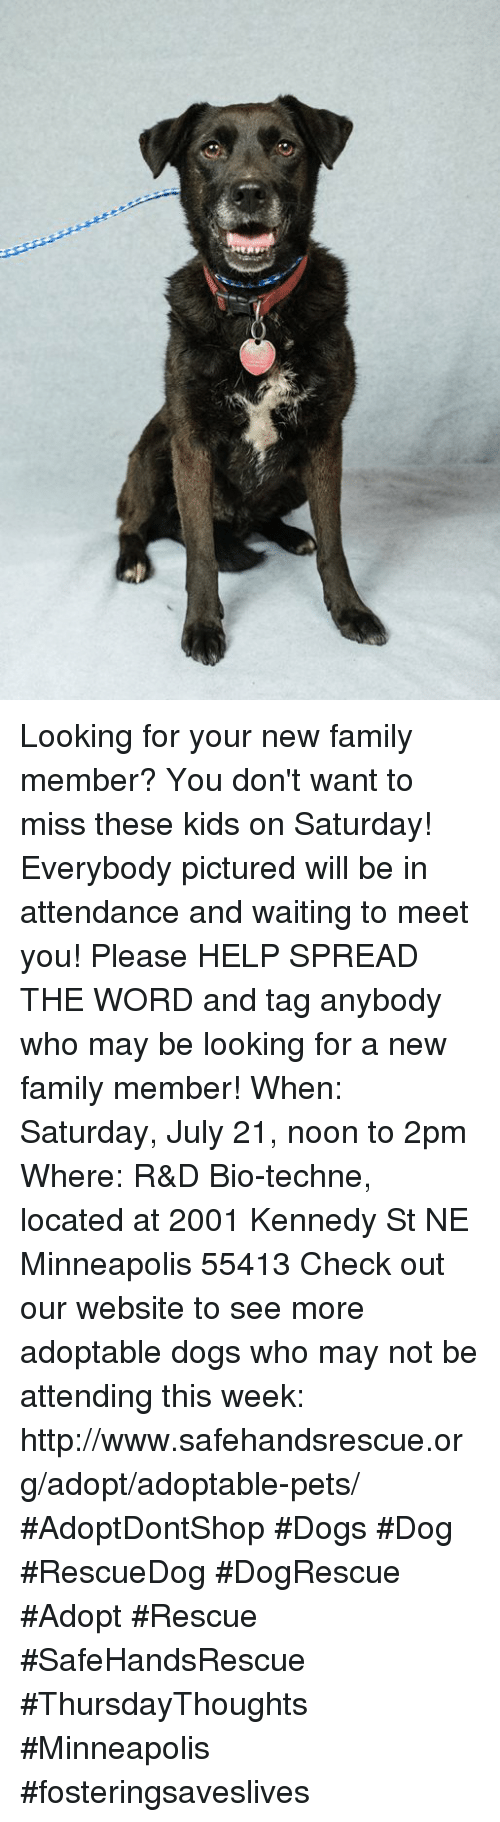 Dogs, Family, and Memes: Looking for your new family member? You don't want to miss these kids on Saturday! Everybody pictured will be in attendance and waiting to meet you! Please HELP SPREAD THE WORD and tag anybody who may be looking for a new family member!  When: Saturday, July 21, noon to 2pm  Where: R&D Bio-techne, located at 2001 Kennedy St NE Minneapolis 55413   Check out our website to see more adoptable dogs who may not be attending this week: http://www.safehandsrescue.org/adopt/adoptable-pets/  #AdoptDontShop #Dogs #Dog #RescueDog #DogRescue #Adopt #Rescue #SafeHandsRescue #ThursdayThoughts  #Minneapolis #fosteringsaveslives